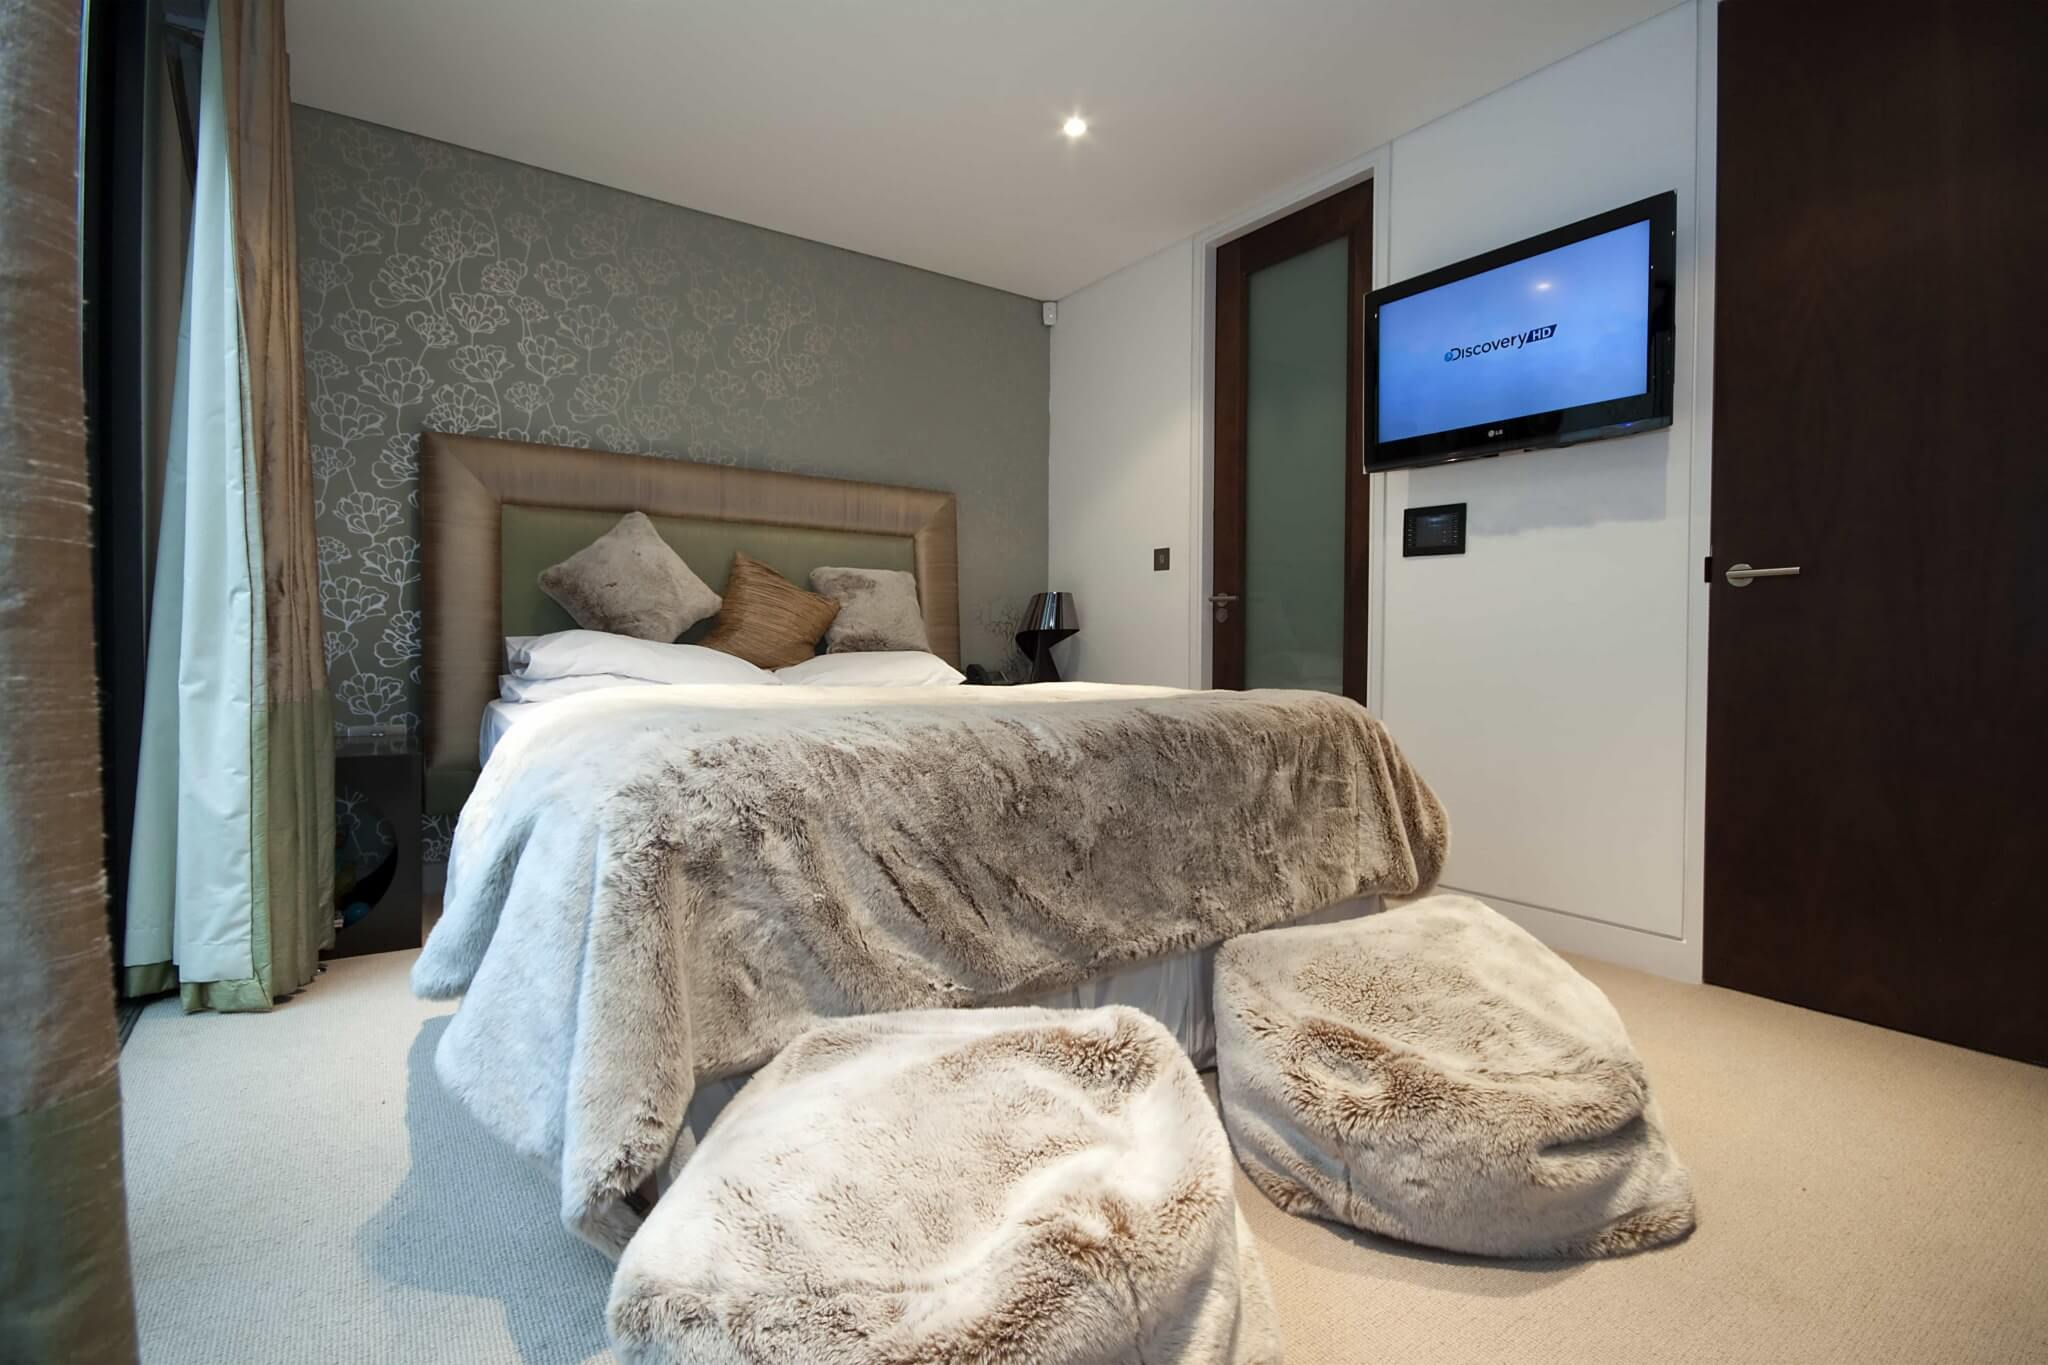 Bedroom Entertainment System in London